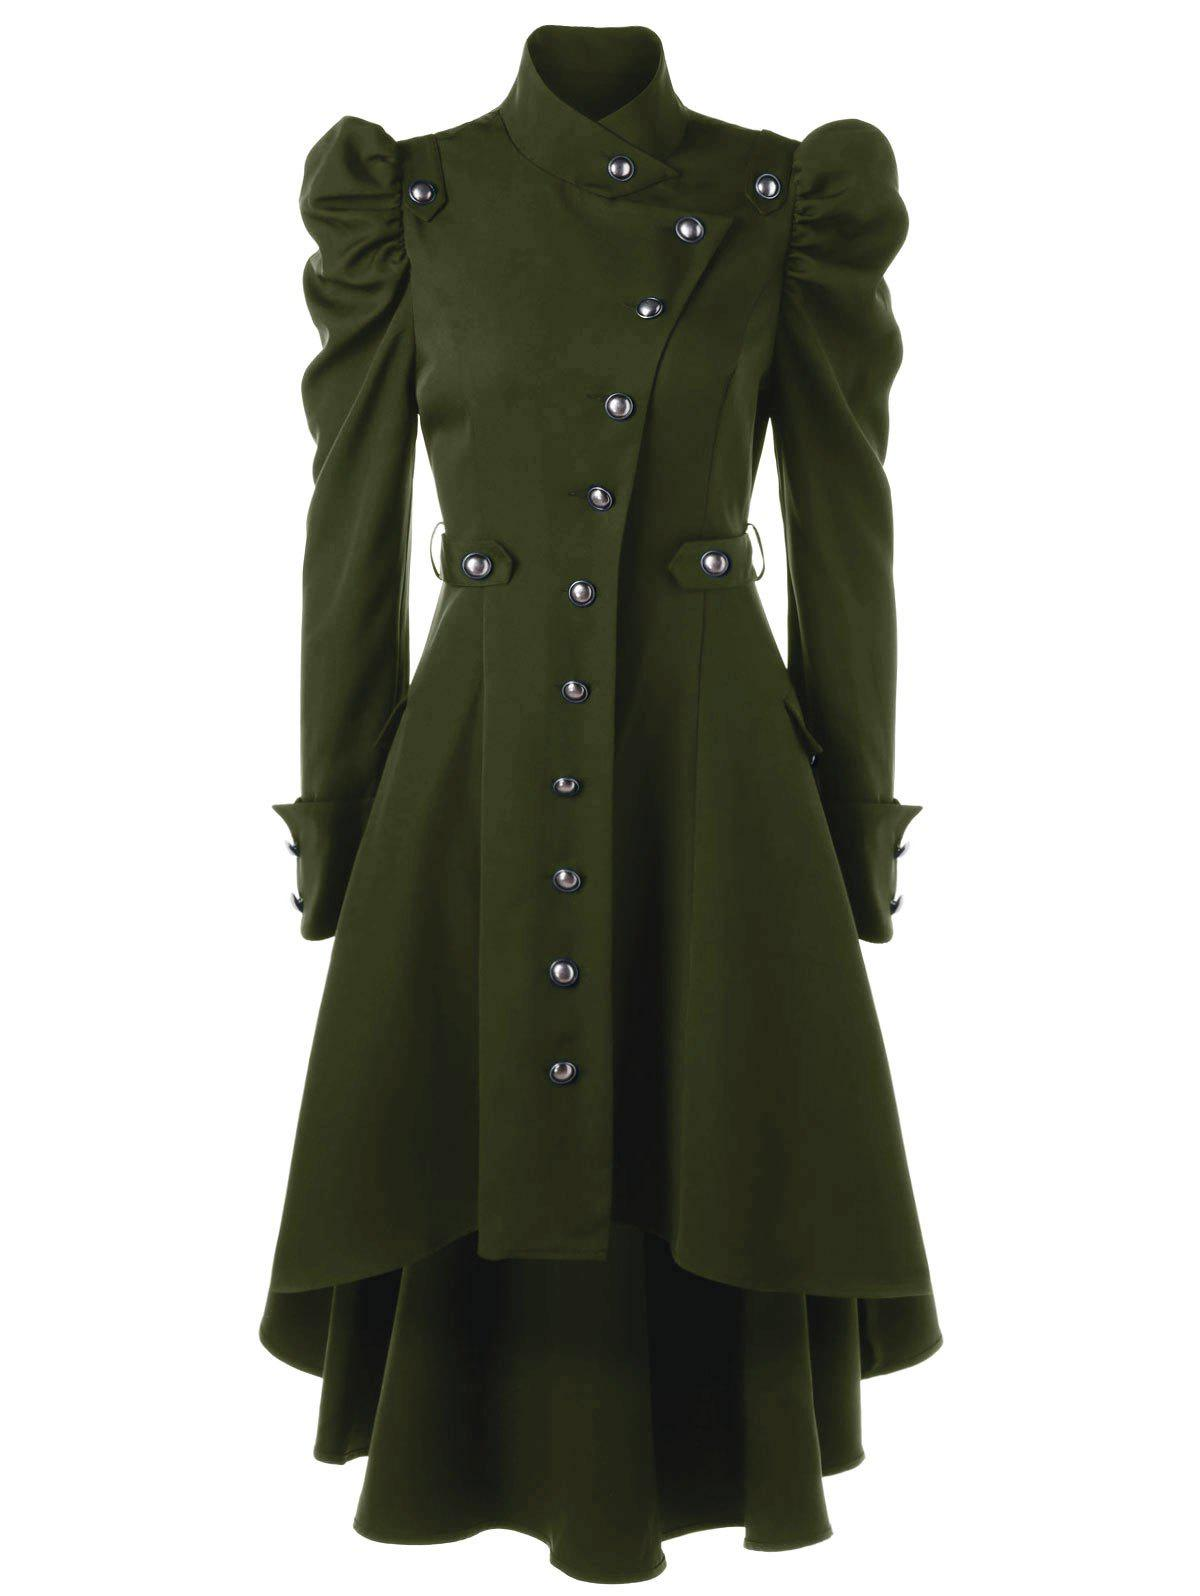 Puff Shoulder Single Breasted Dip Hem Trench CoatWOMEN<br><br>Size: L; Color: ARMY GREEN; Clothes Type: Trench; Material: Polyester; Type: High Waist; Shirt Length: Long; Sleeve Length: Full; Collar: Stand-Up Collar; Pattern Type: Solid; Style: Vintage; Season: Fall,Spring; Weight: 0.7000kg; Package Contents: 1 x Trench Coat;